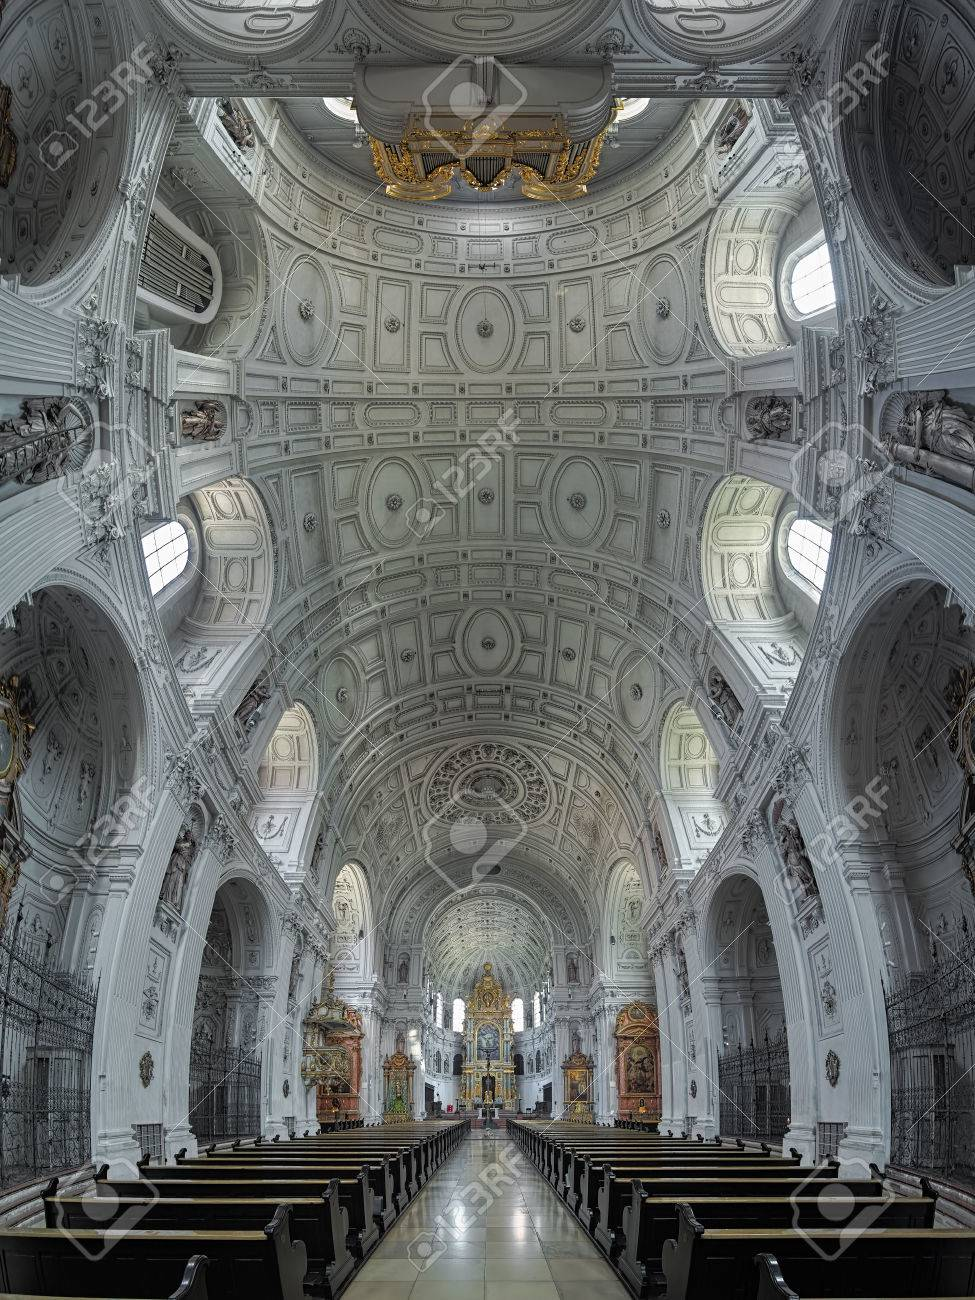 MUNICH, GERMANY - MAY 30, 2017: Vertical panorama of interior of St. Michael's Church. The church was built by William V, Duke of Bavaria in 1583-1597.